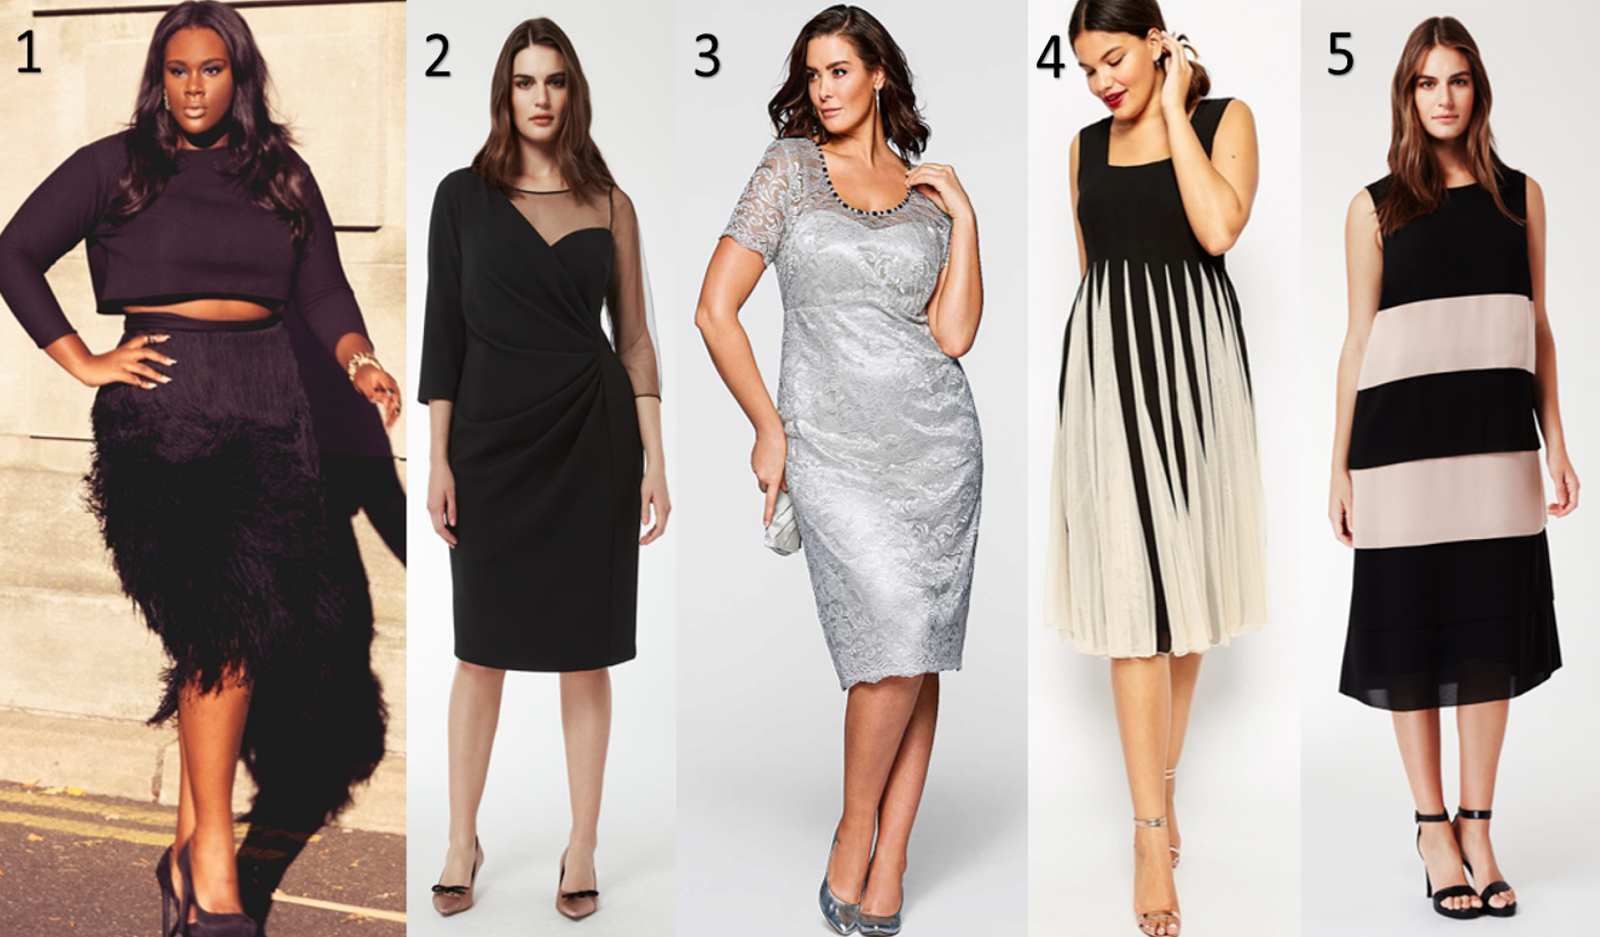 Christmas 2015 Office Party Picks - ChloePierreLDN